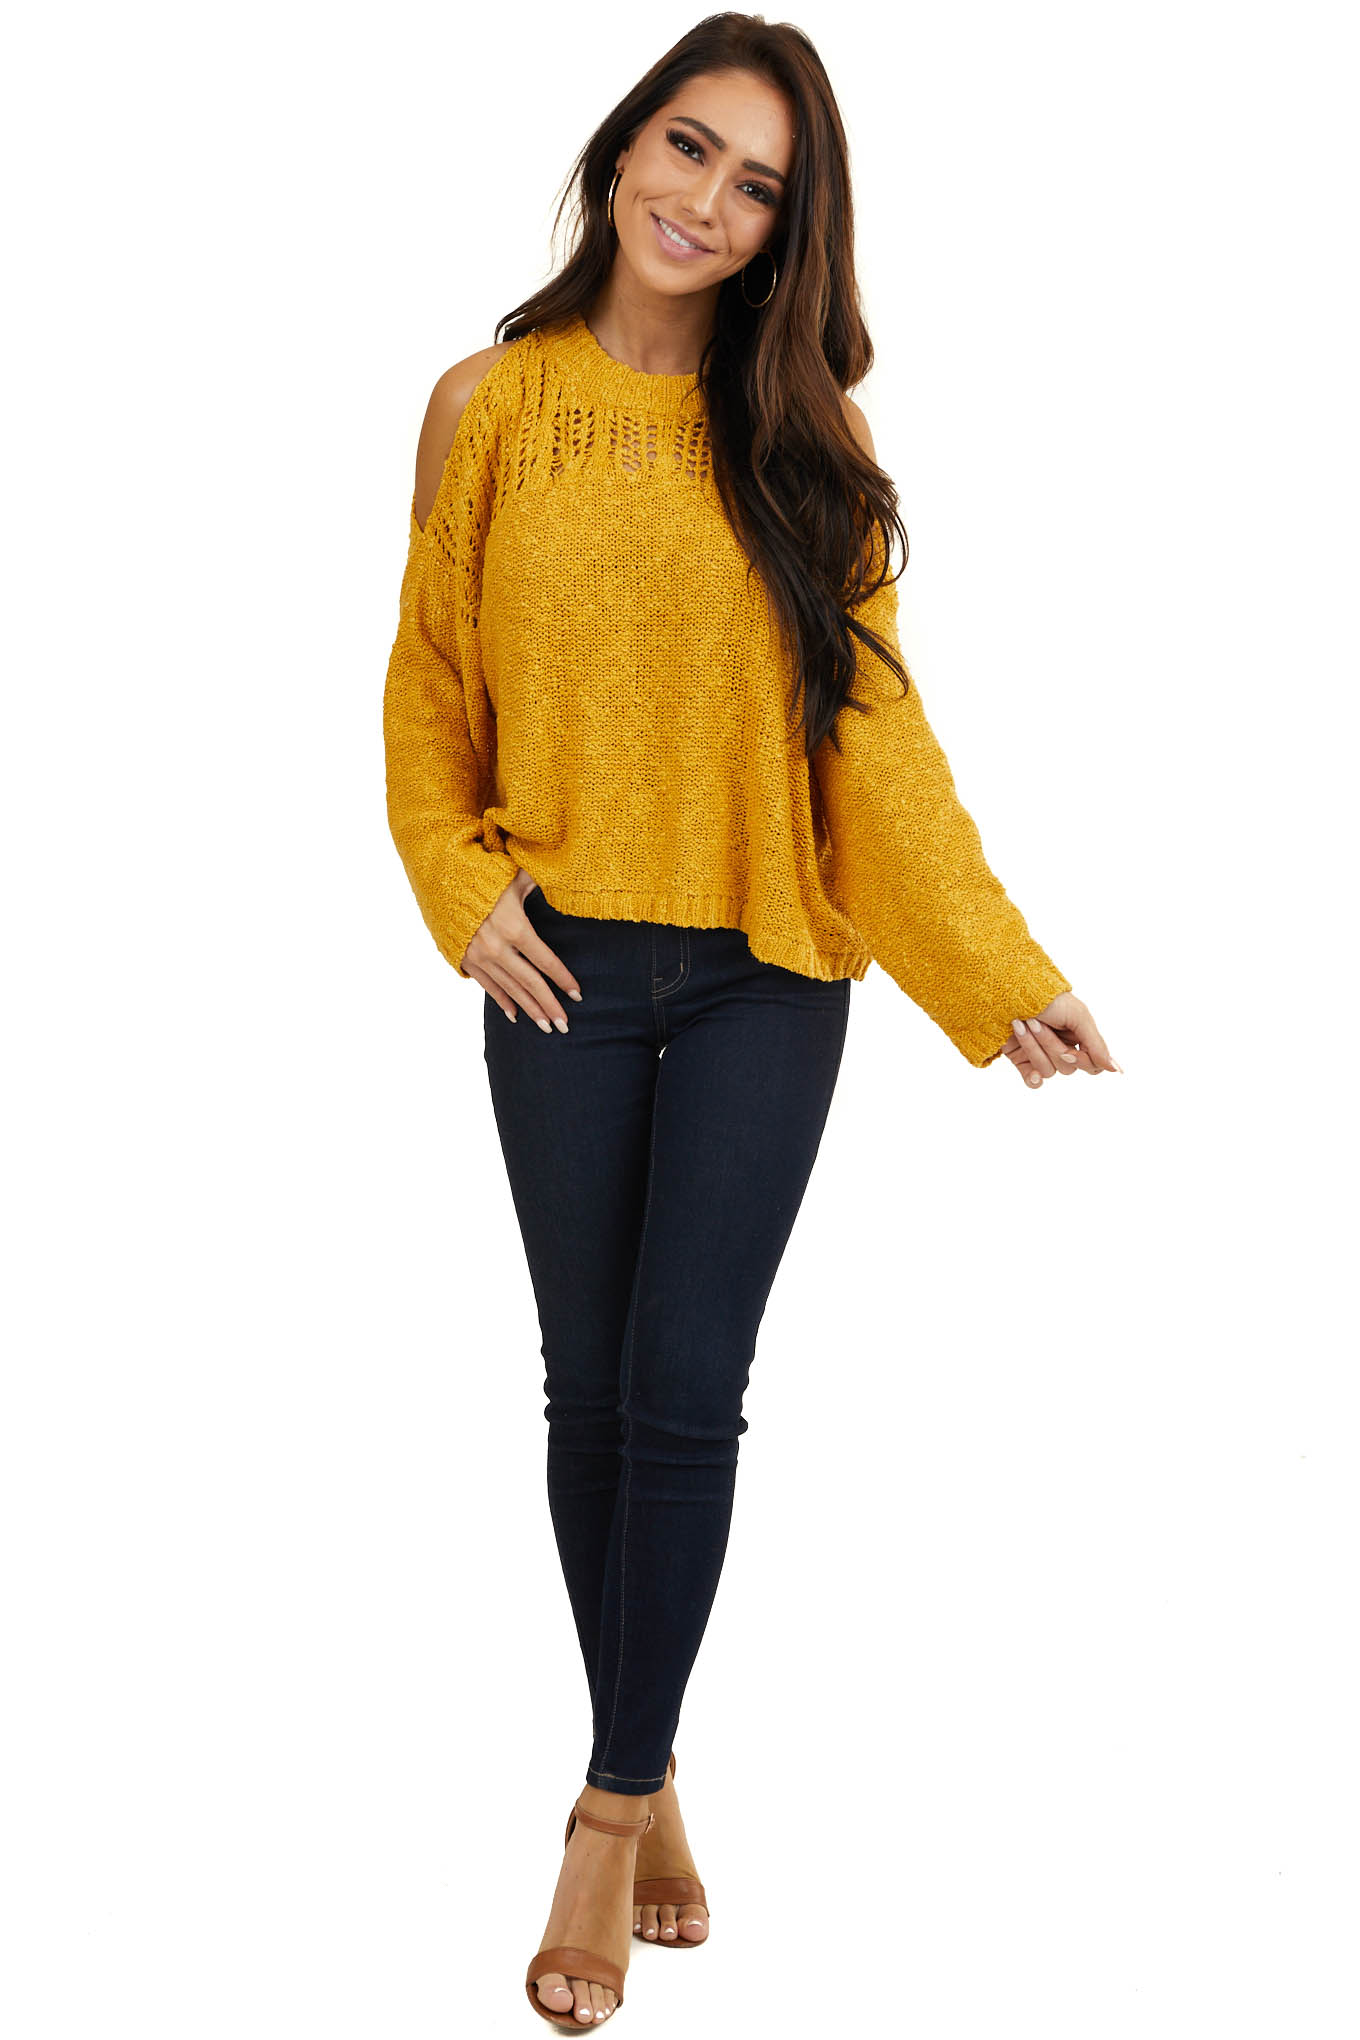 Mustard Yellow Cropped Knit Sweater with Cold Shoulders